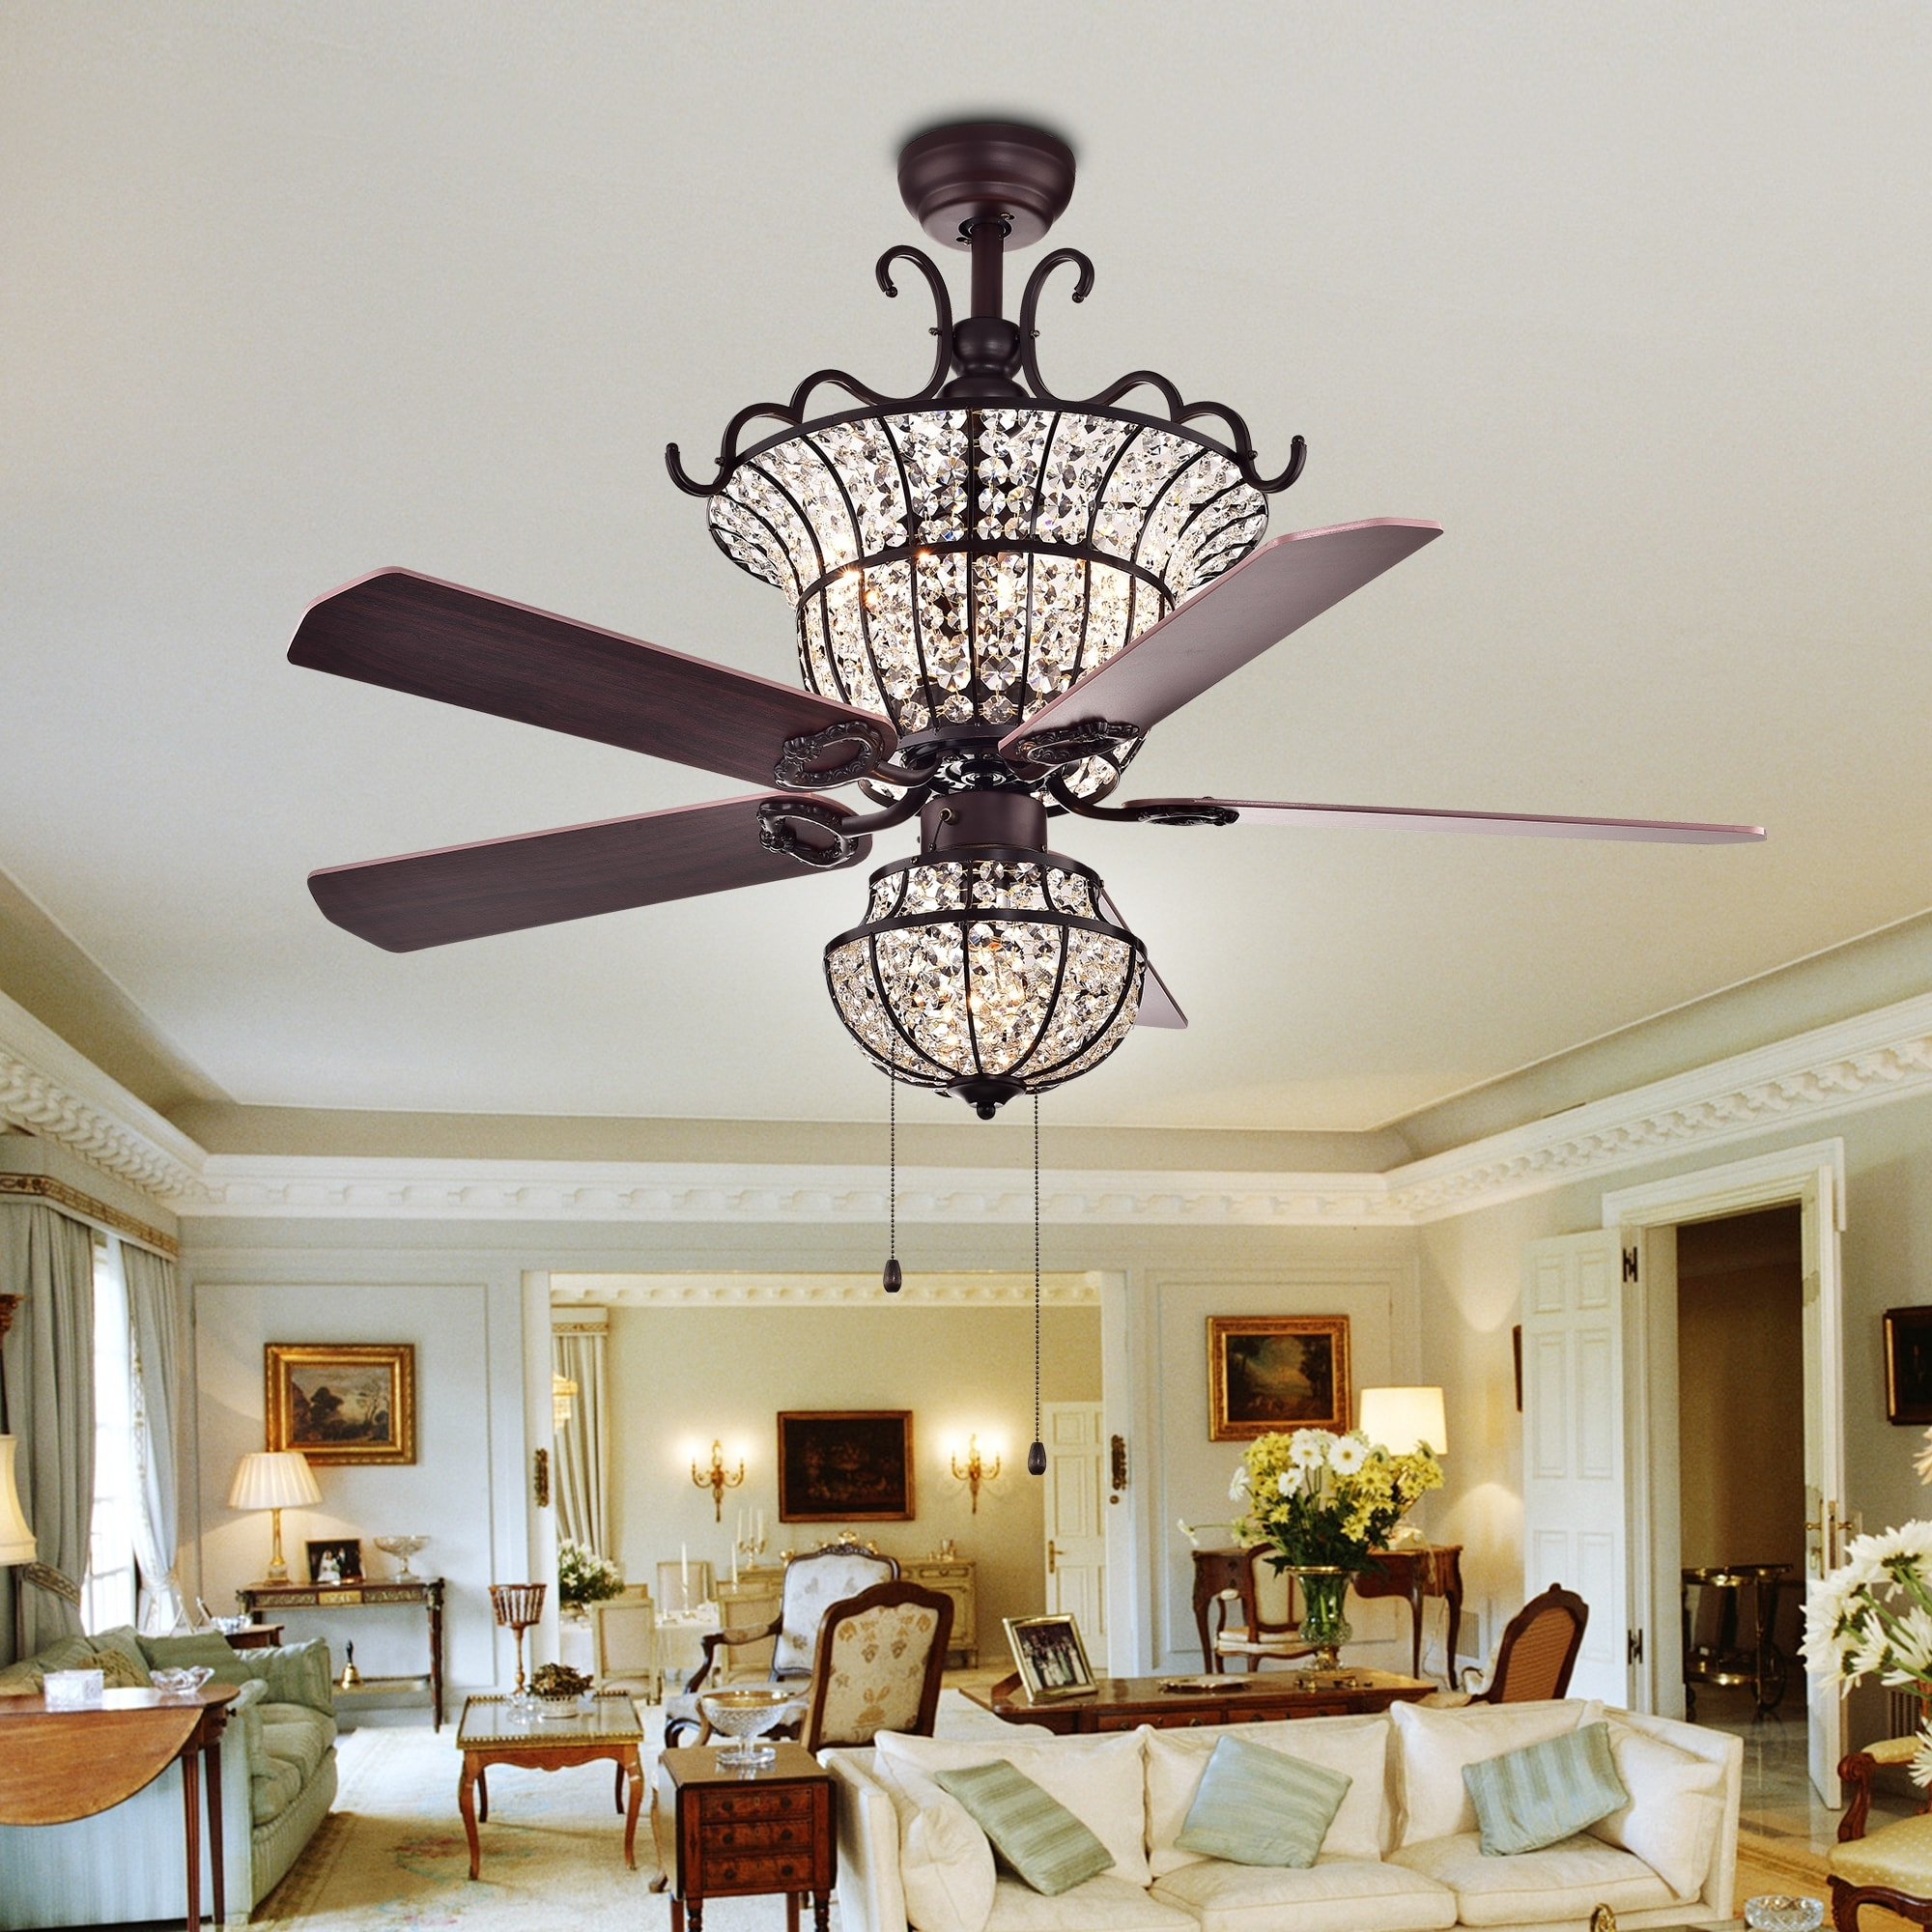 Buy Ceiling Fans Online At Overstock (View 18 of 20)